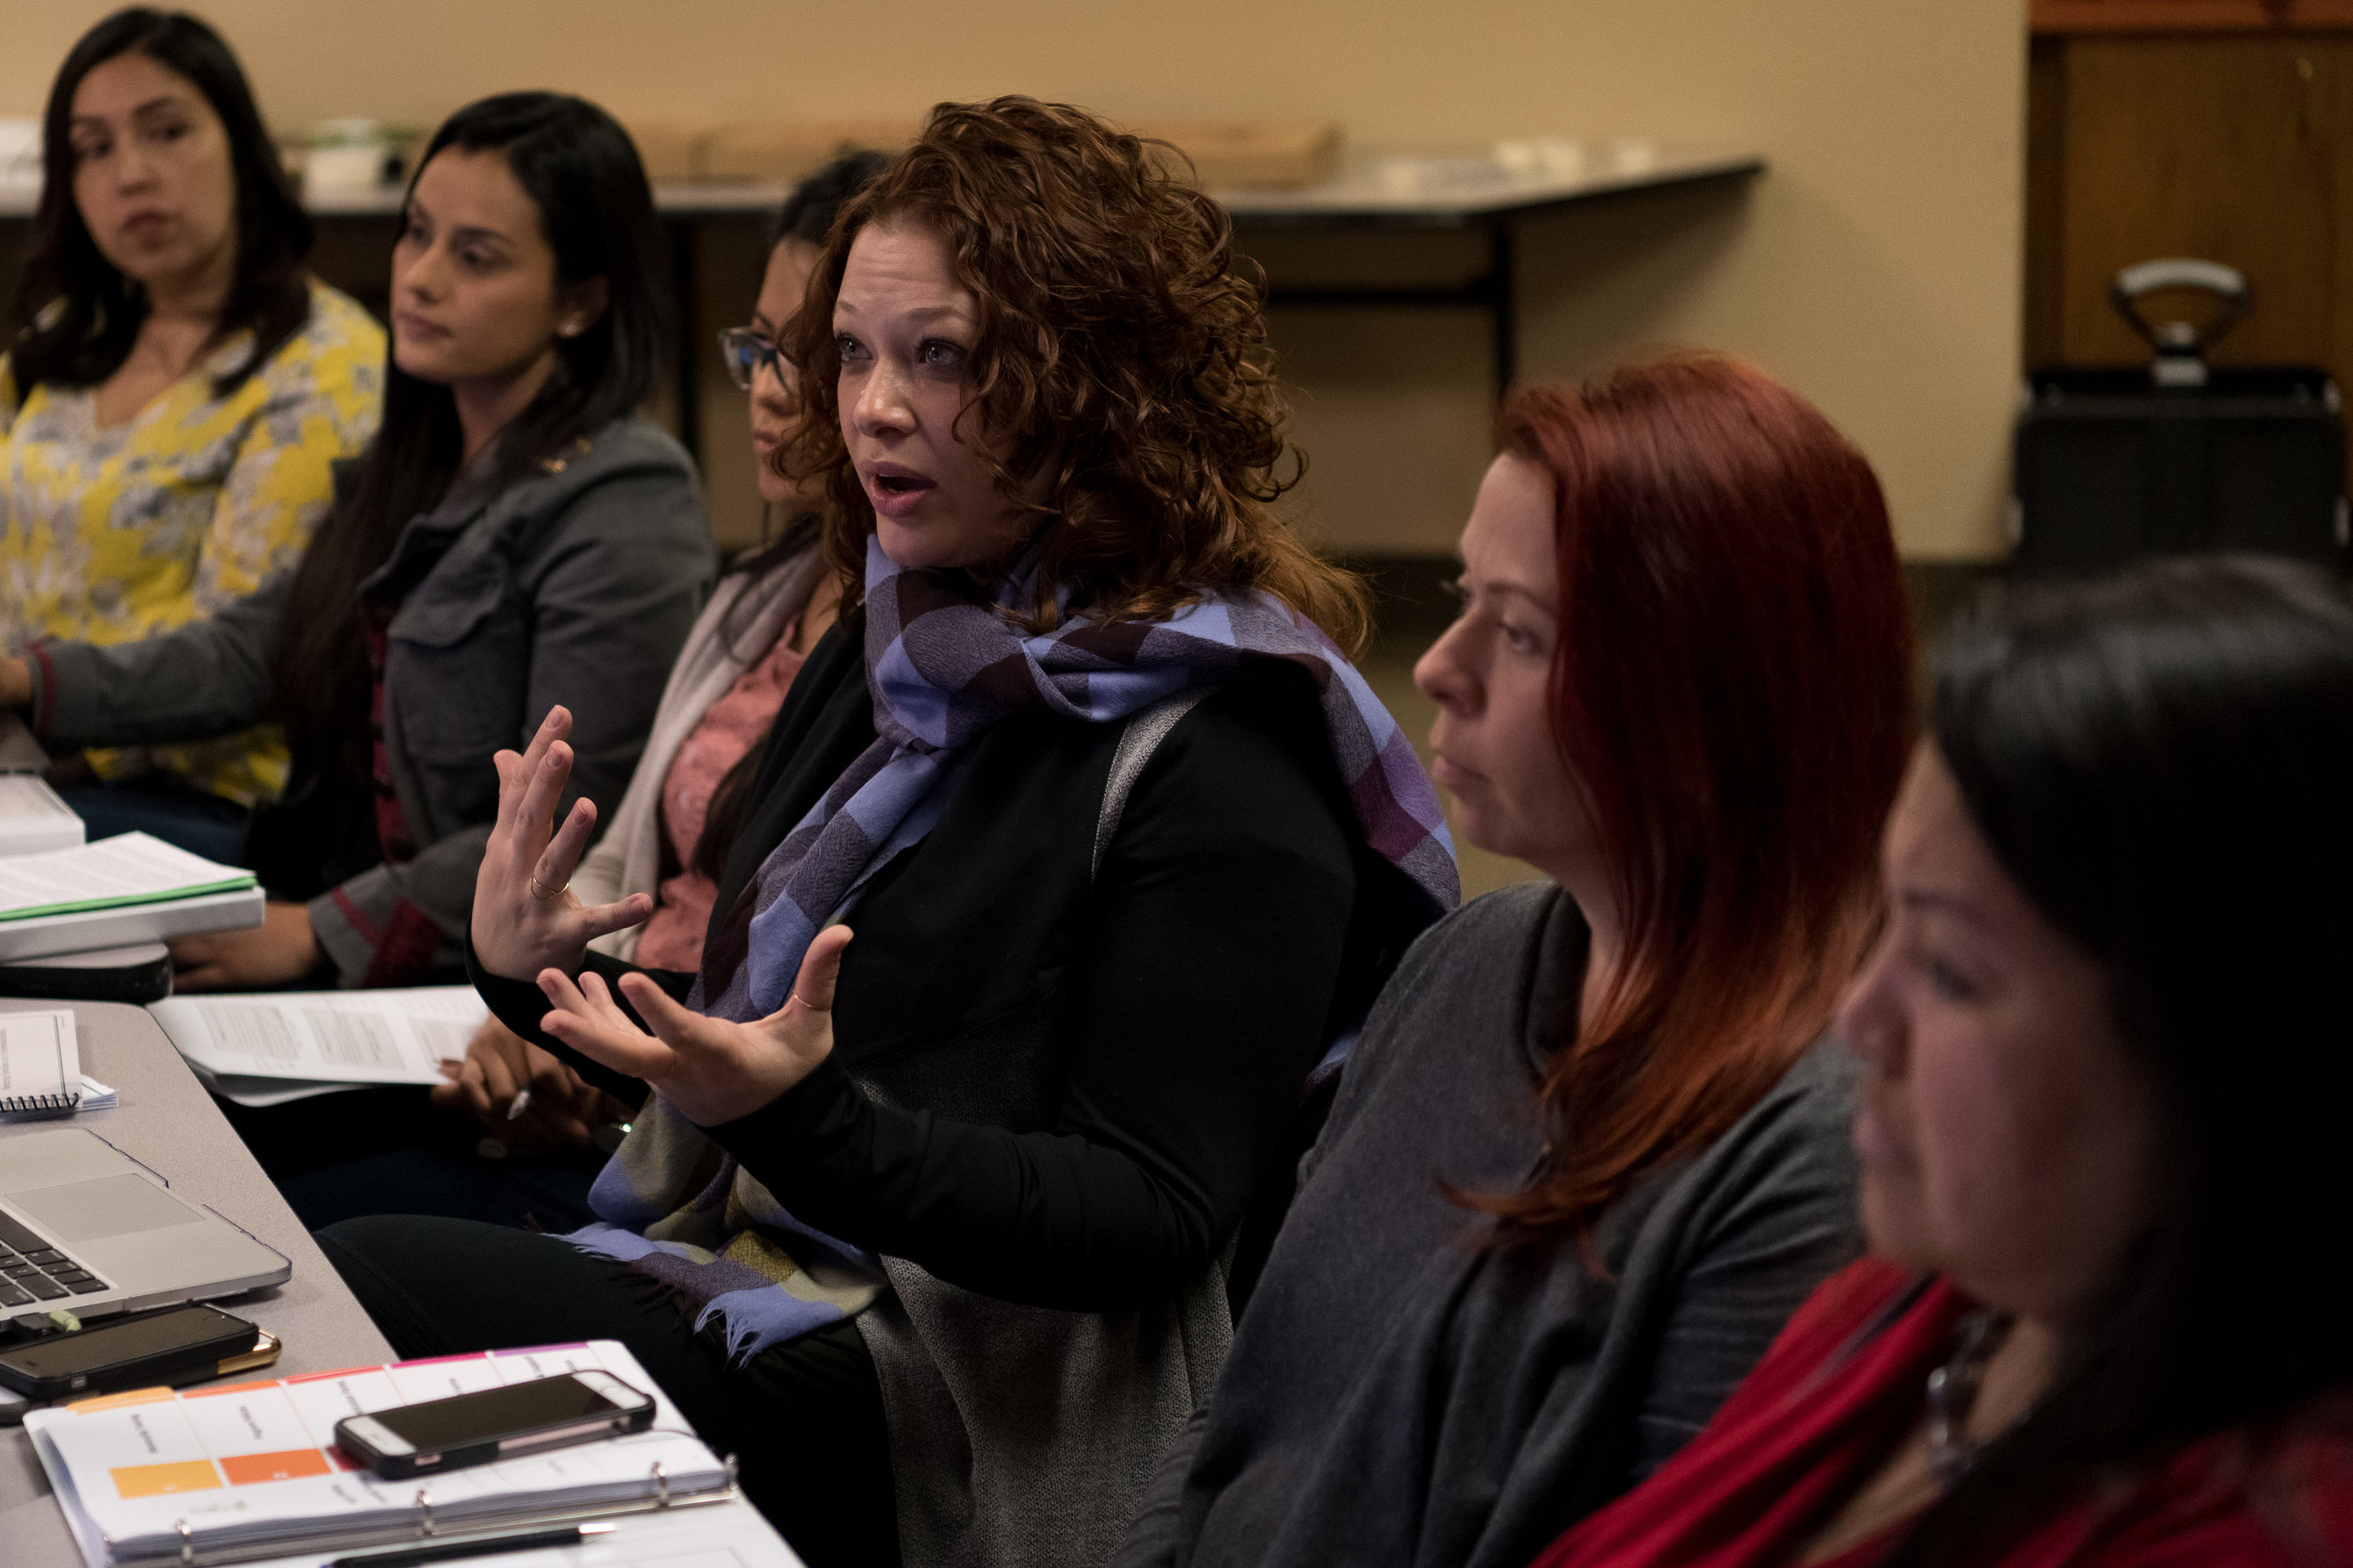 Briana Mandel leads a mentor training at Whittier Area Community Church, part of the Greenleaf Consortium.